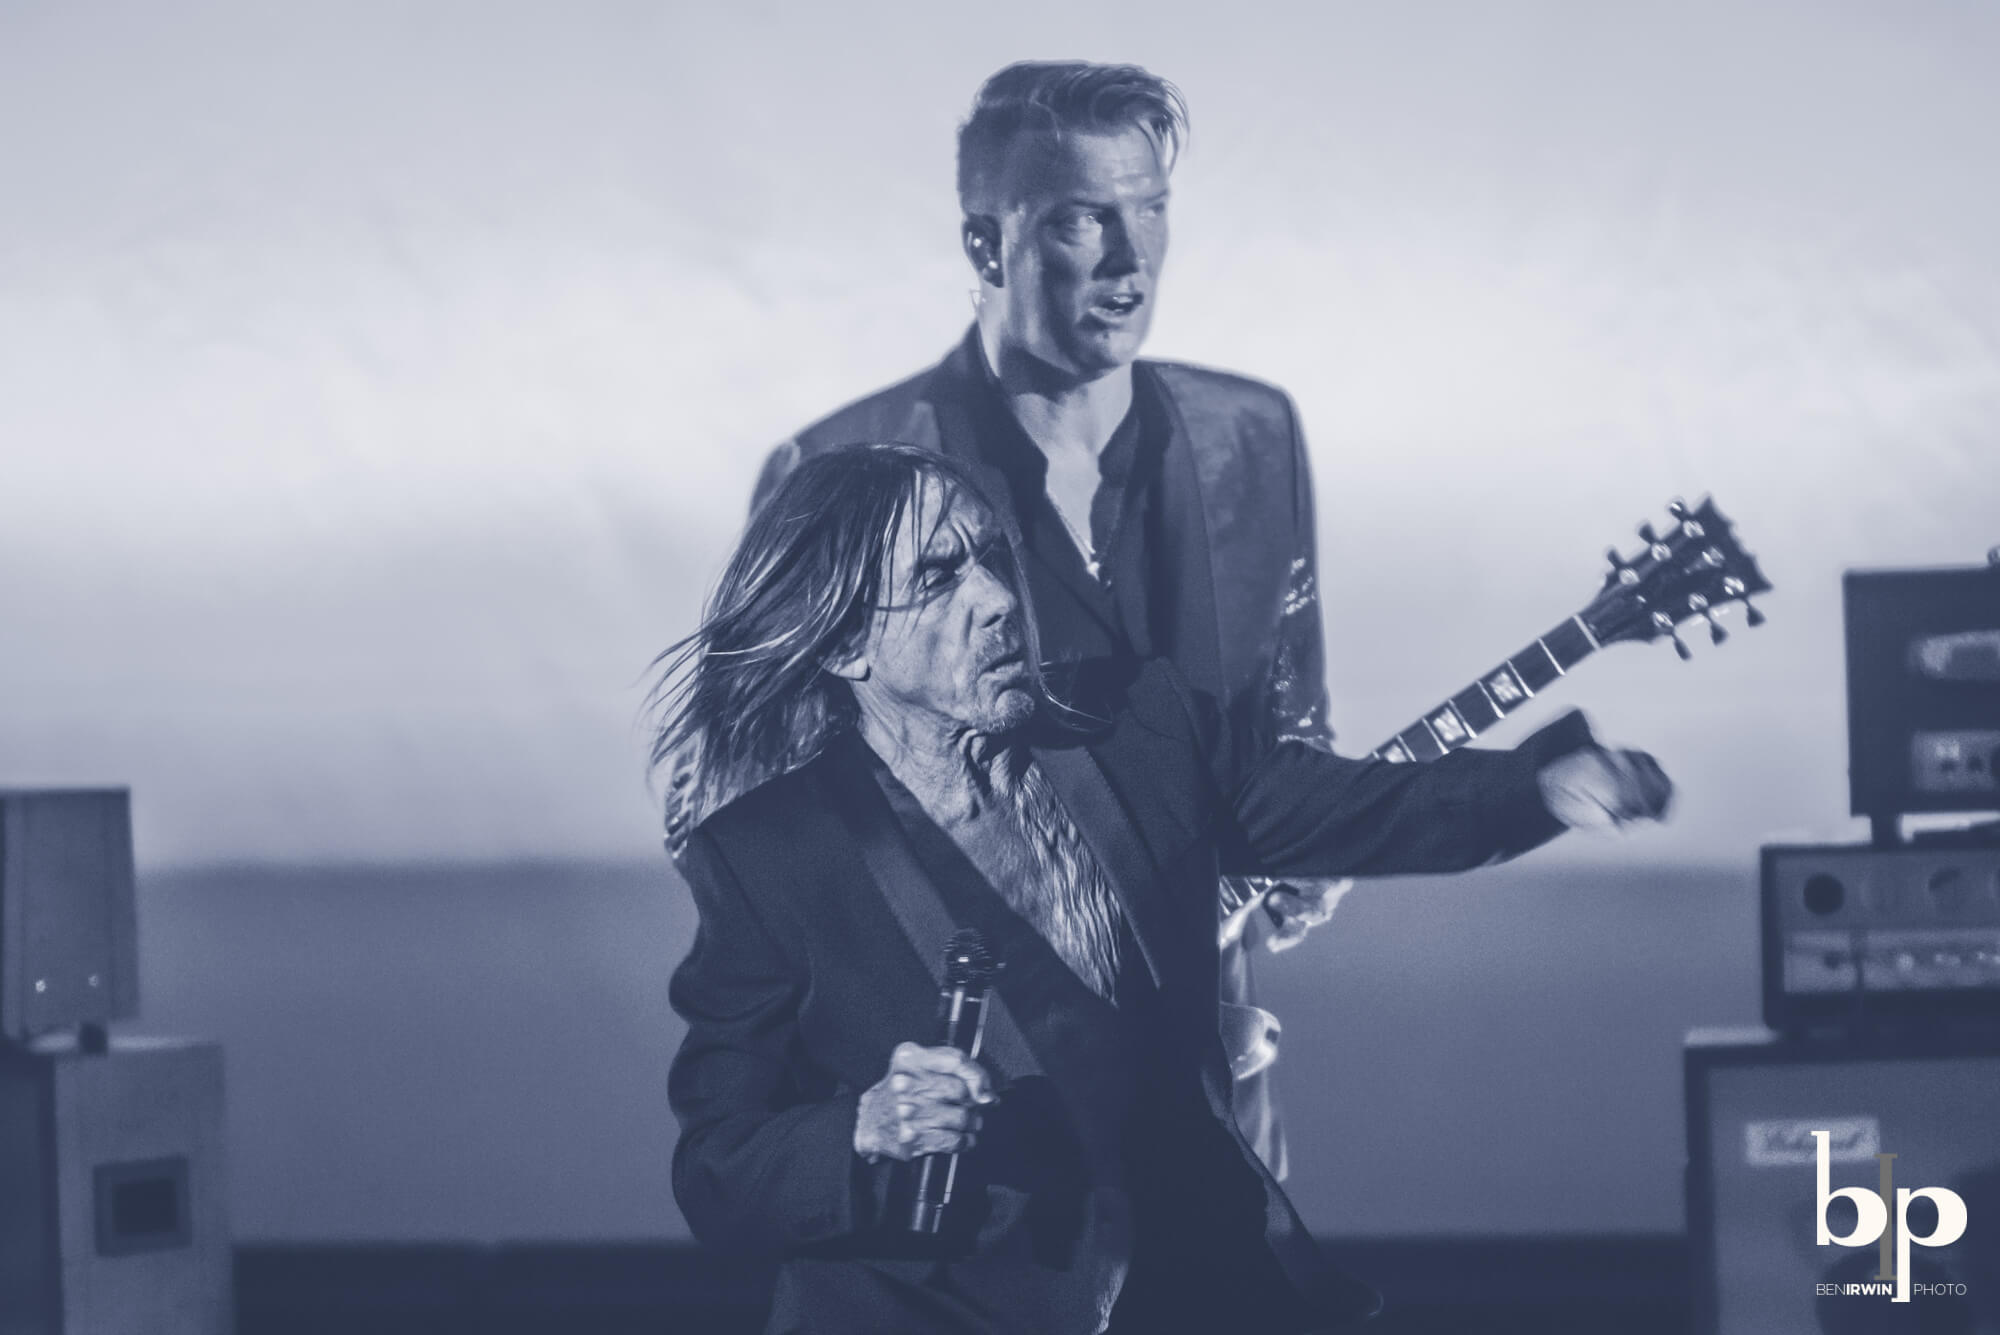 Iggy Pop - Josh Homme - bill callahan - Greek LA - 4-28-16_BI5224